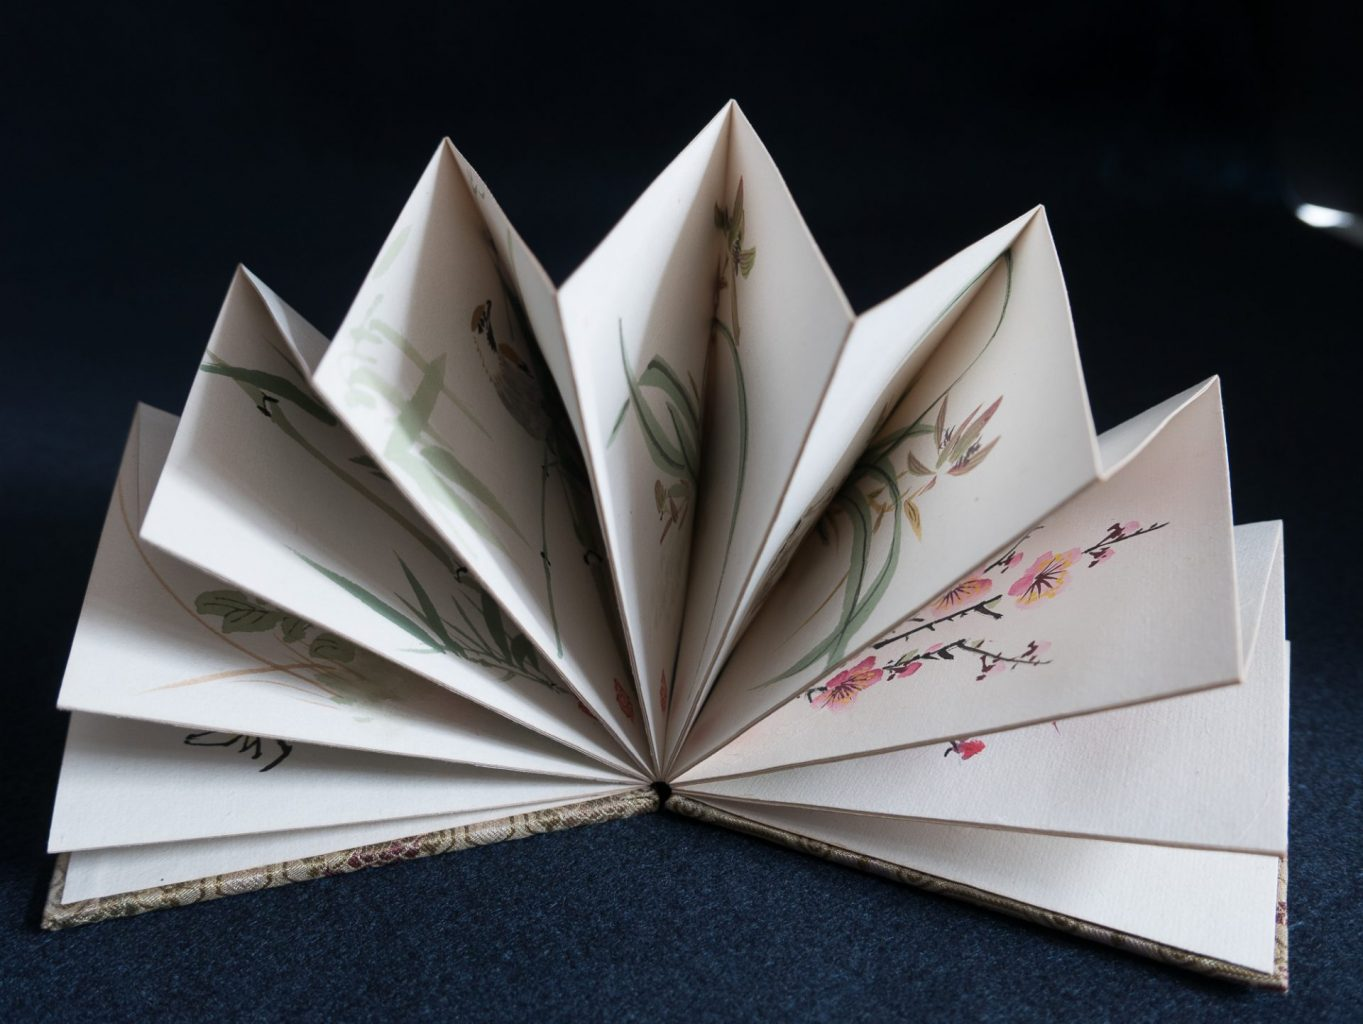 Accordion book from Asia